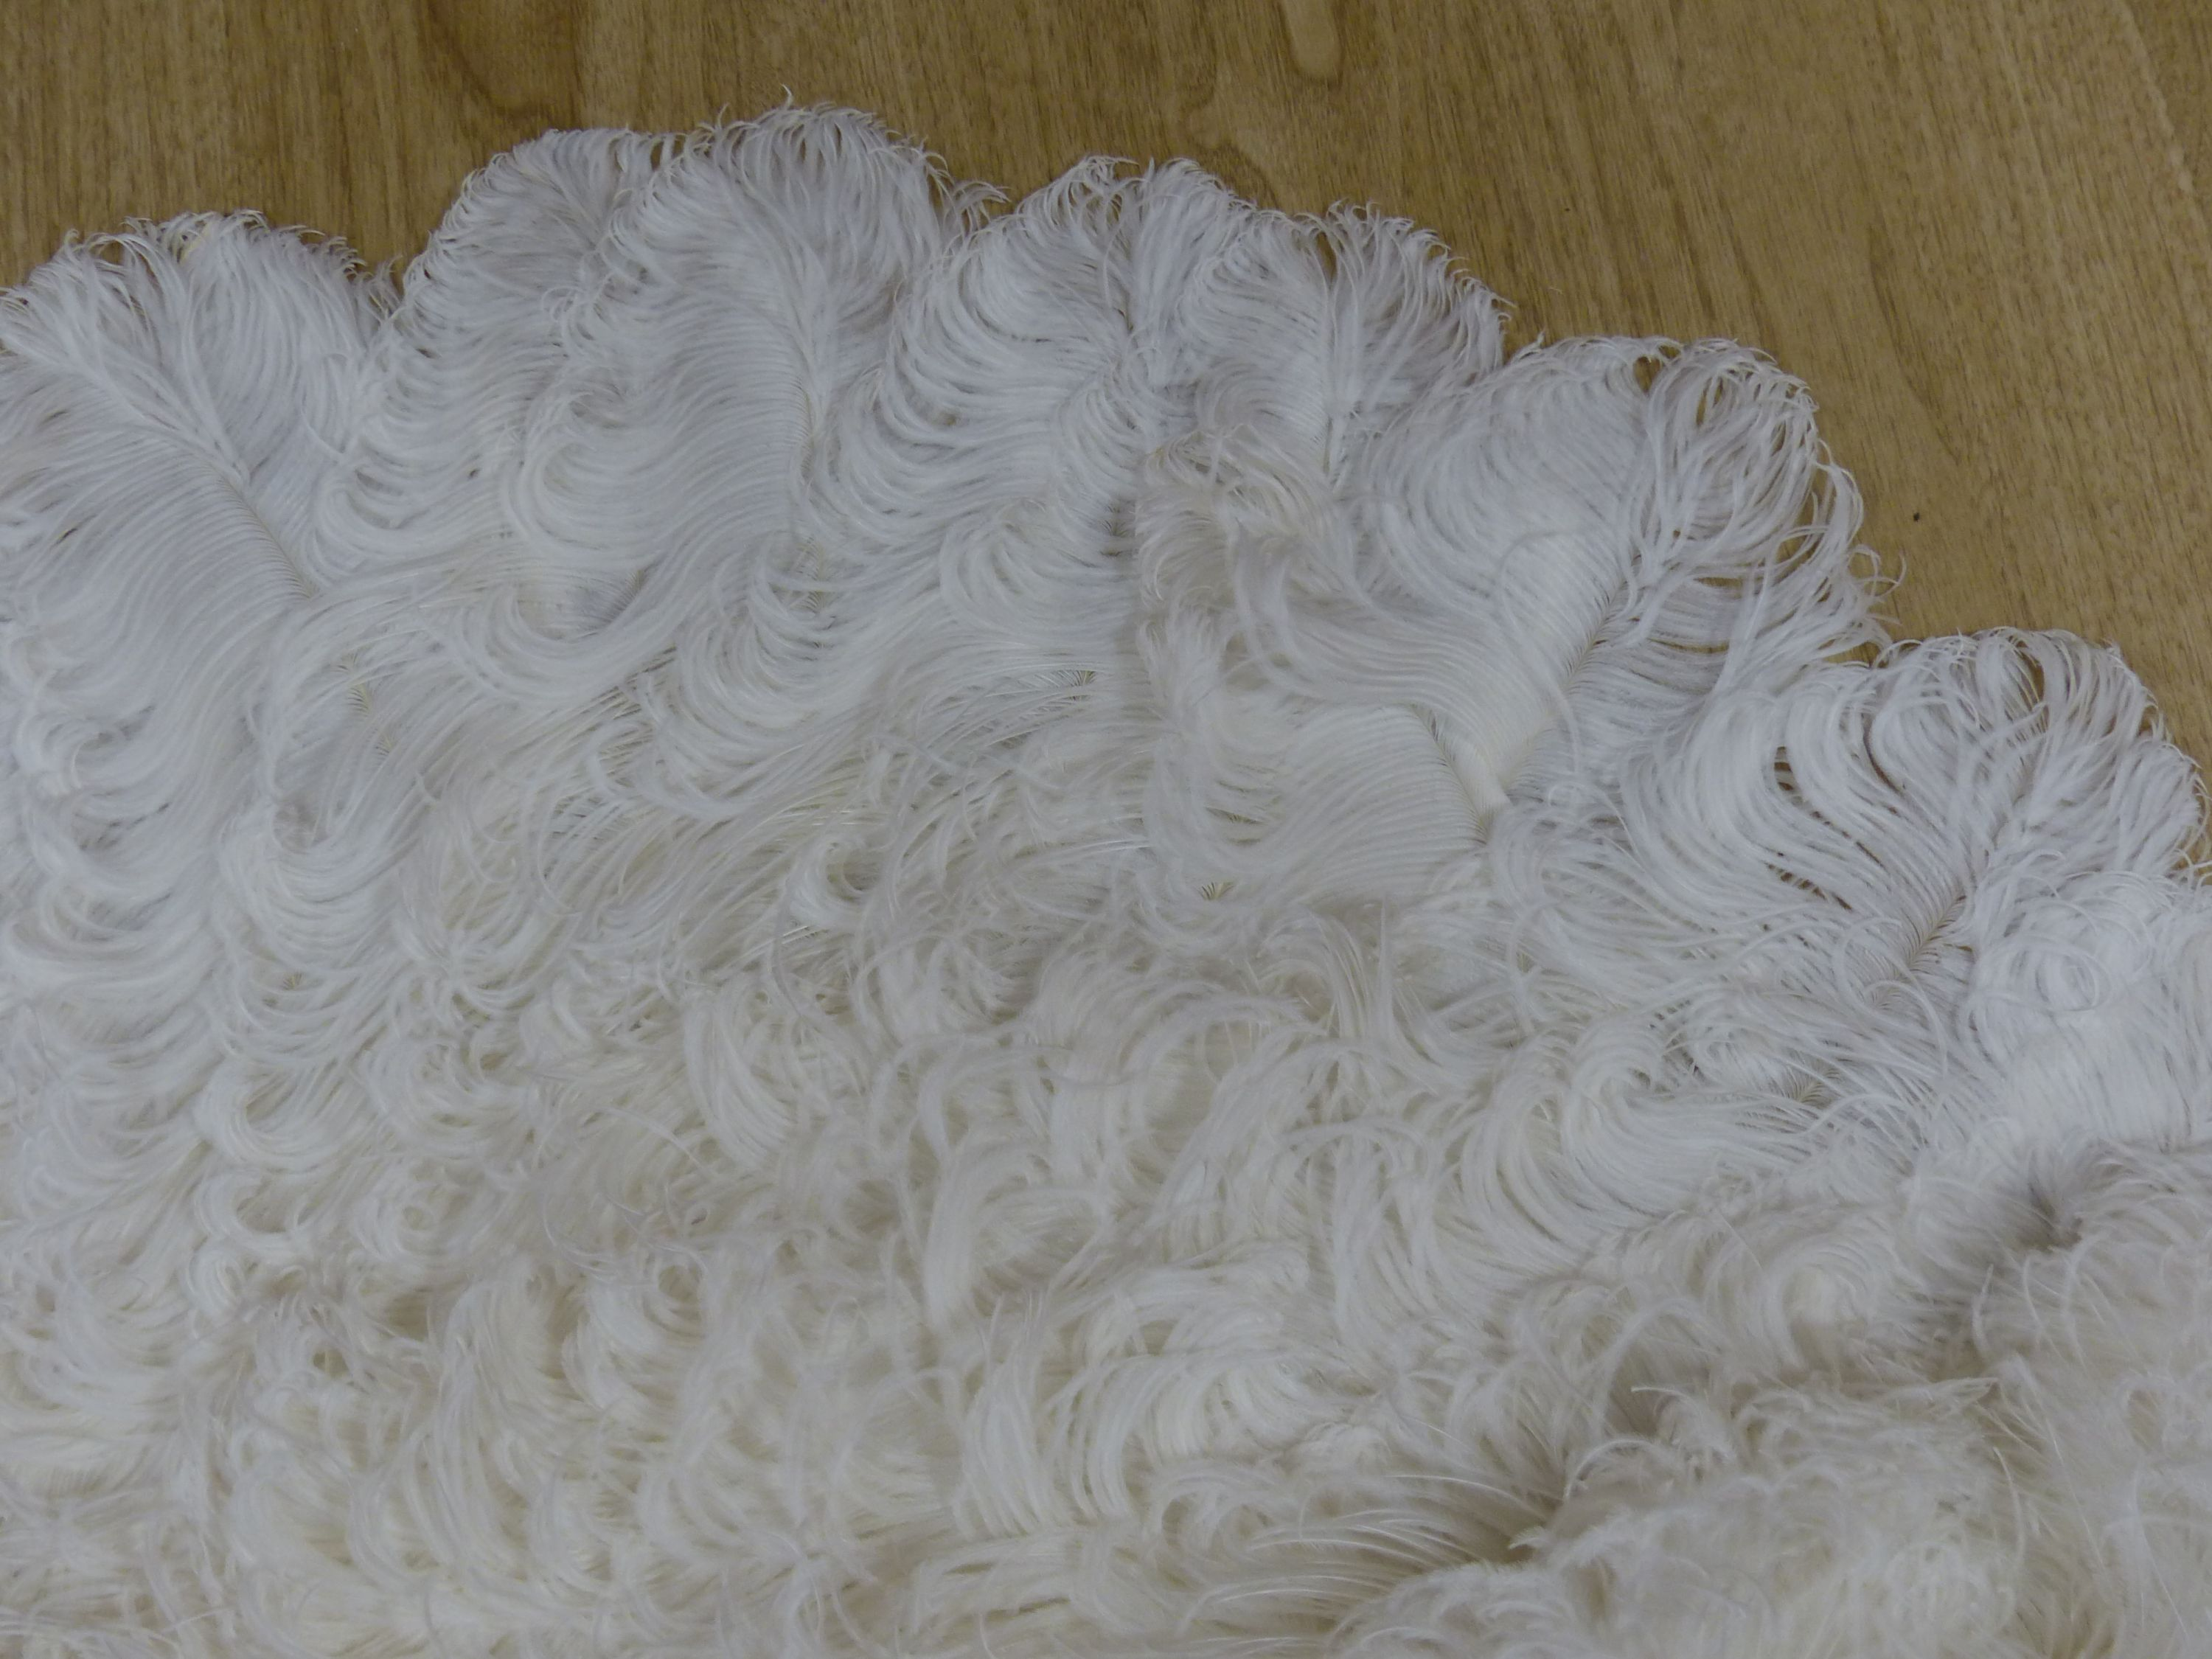 A boxed Duvelleroy ostrich feather fan, early 20th century - Image 4 of 6